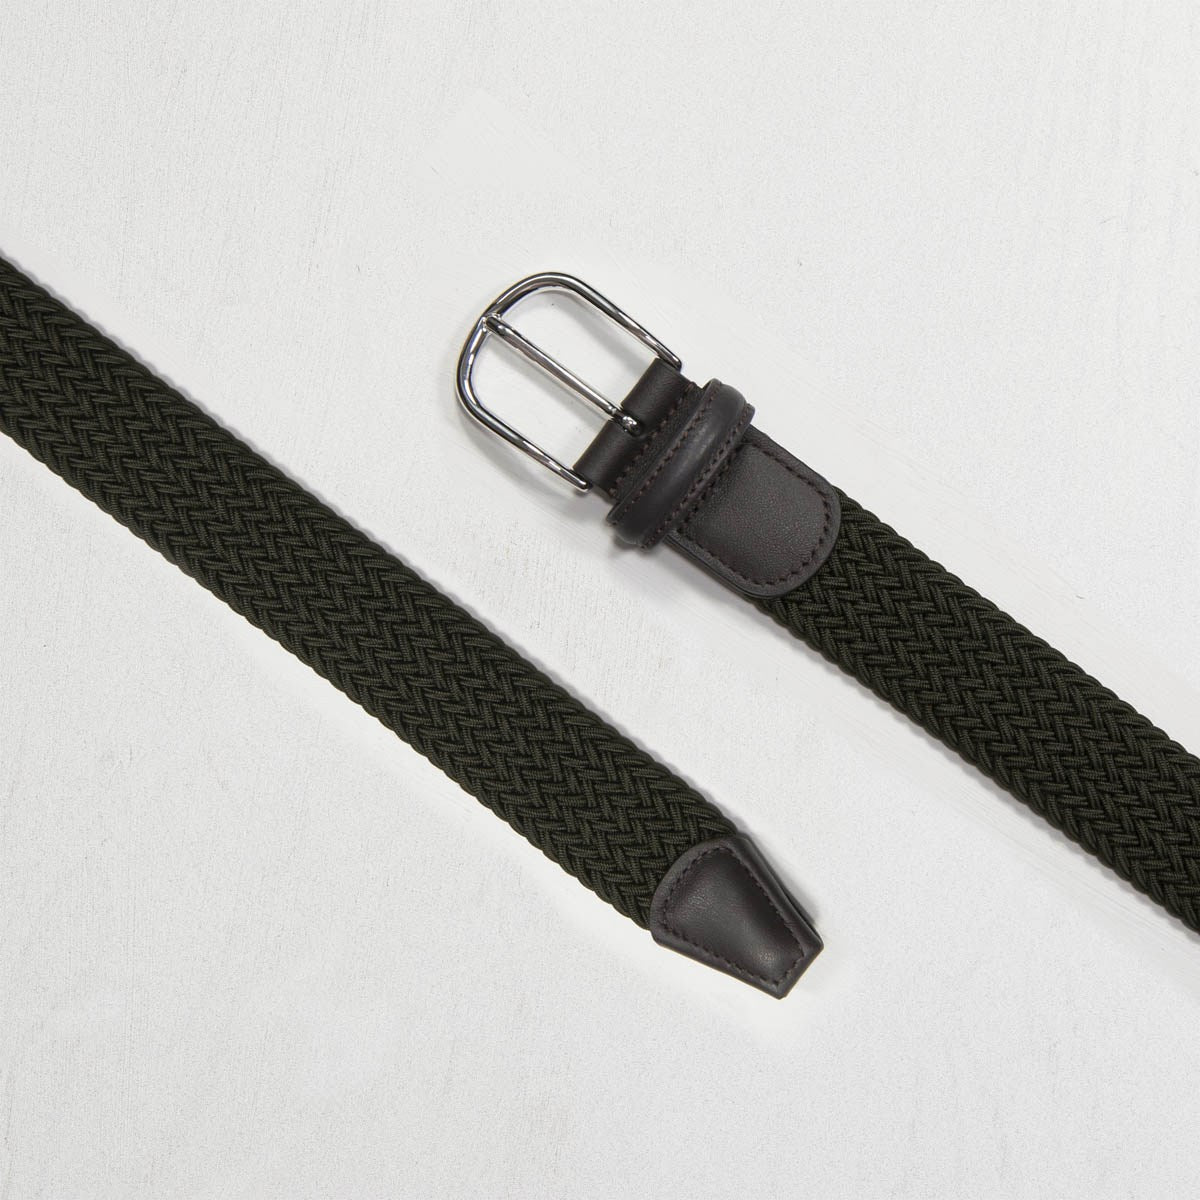 Green Nylon Woven Belt - Mr. Derk Apparel Ltd.